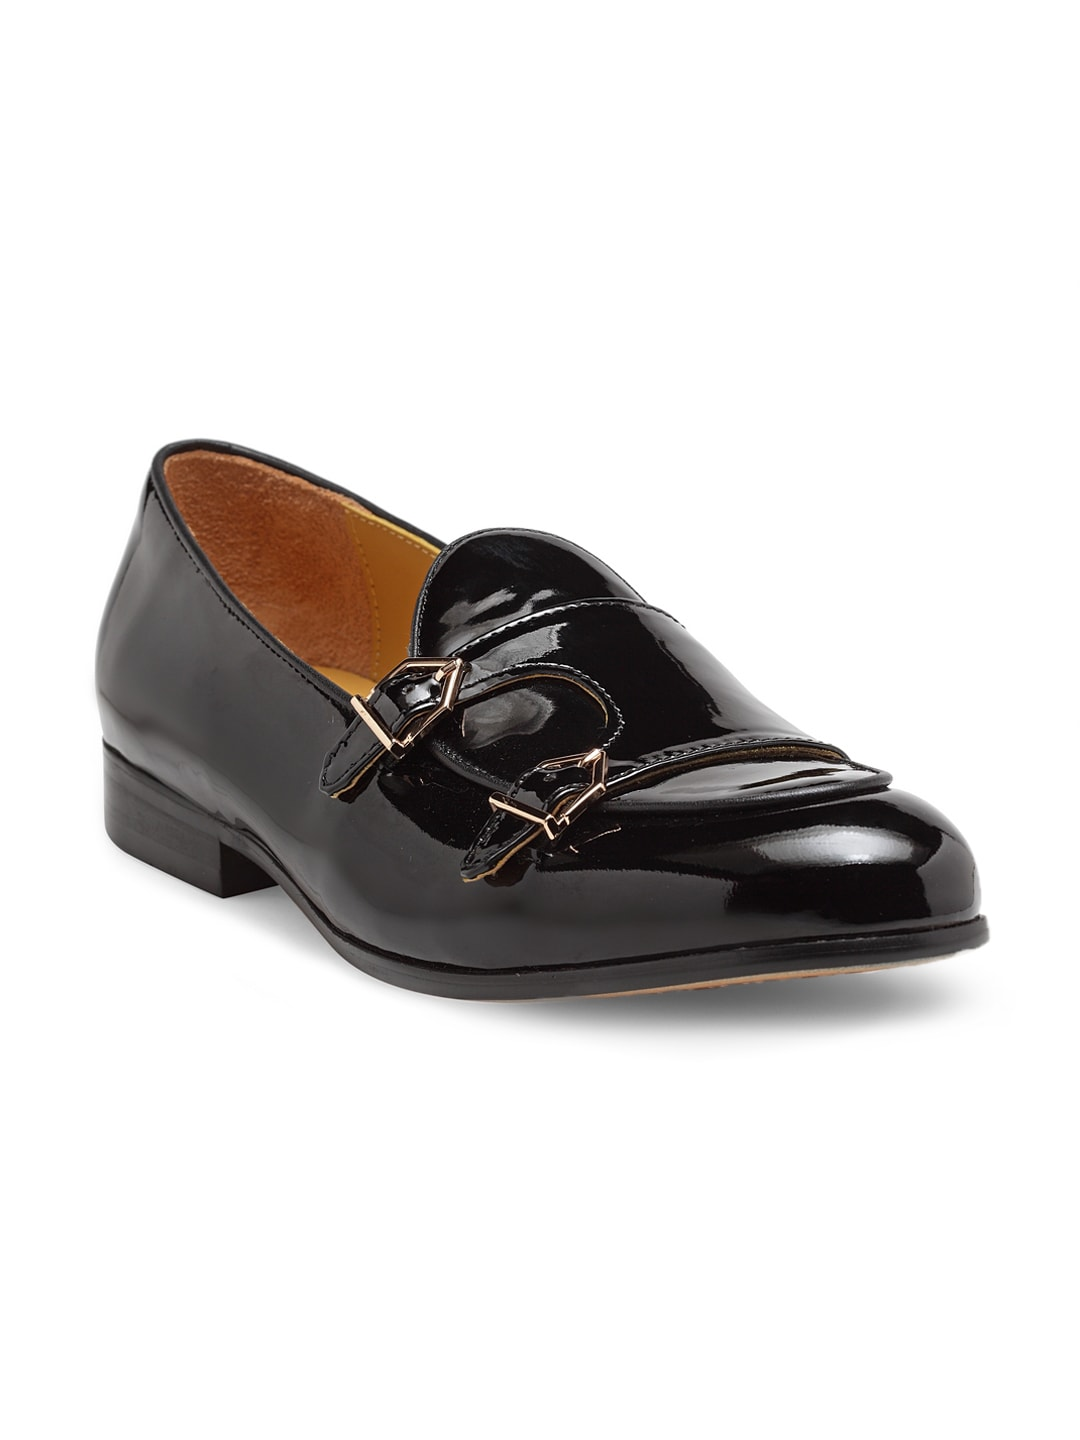 e7989f2b552 Formal Shoes Monk Strap - Buy Formal Shoes Monk Strap online in India